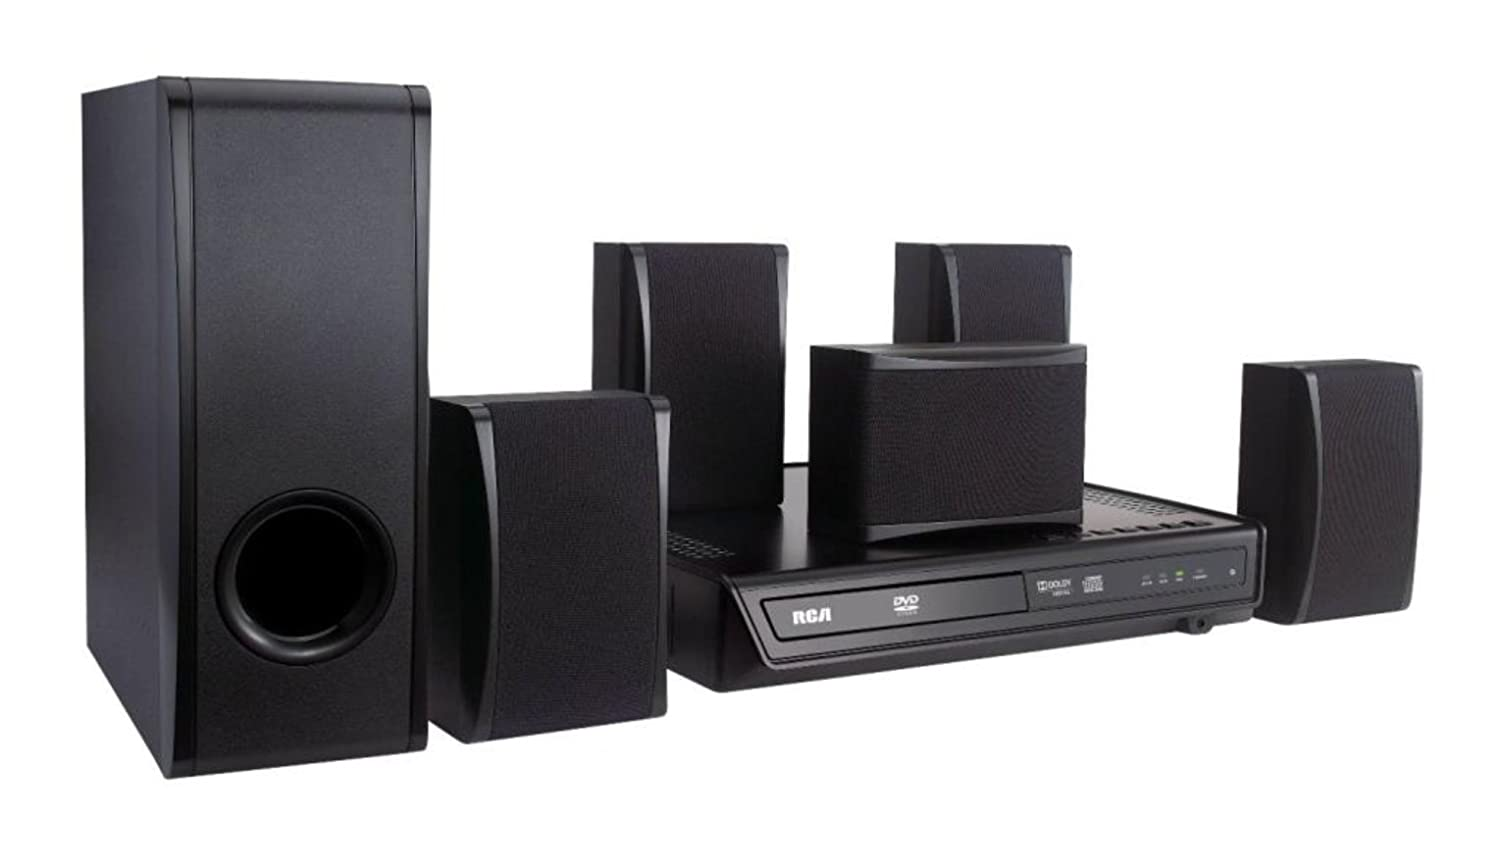 rca rtd396 dvd home theater system electronics sale nhattuanban1938. Black Bedroom Furniture Sets. Home Design Ideas